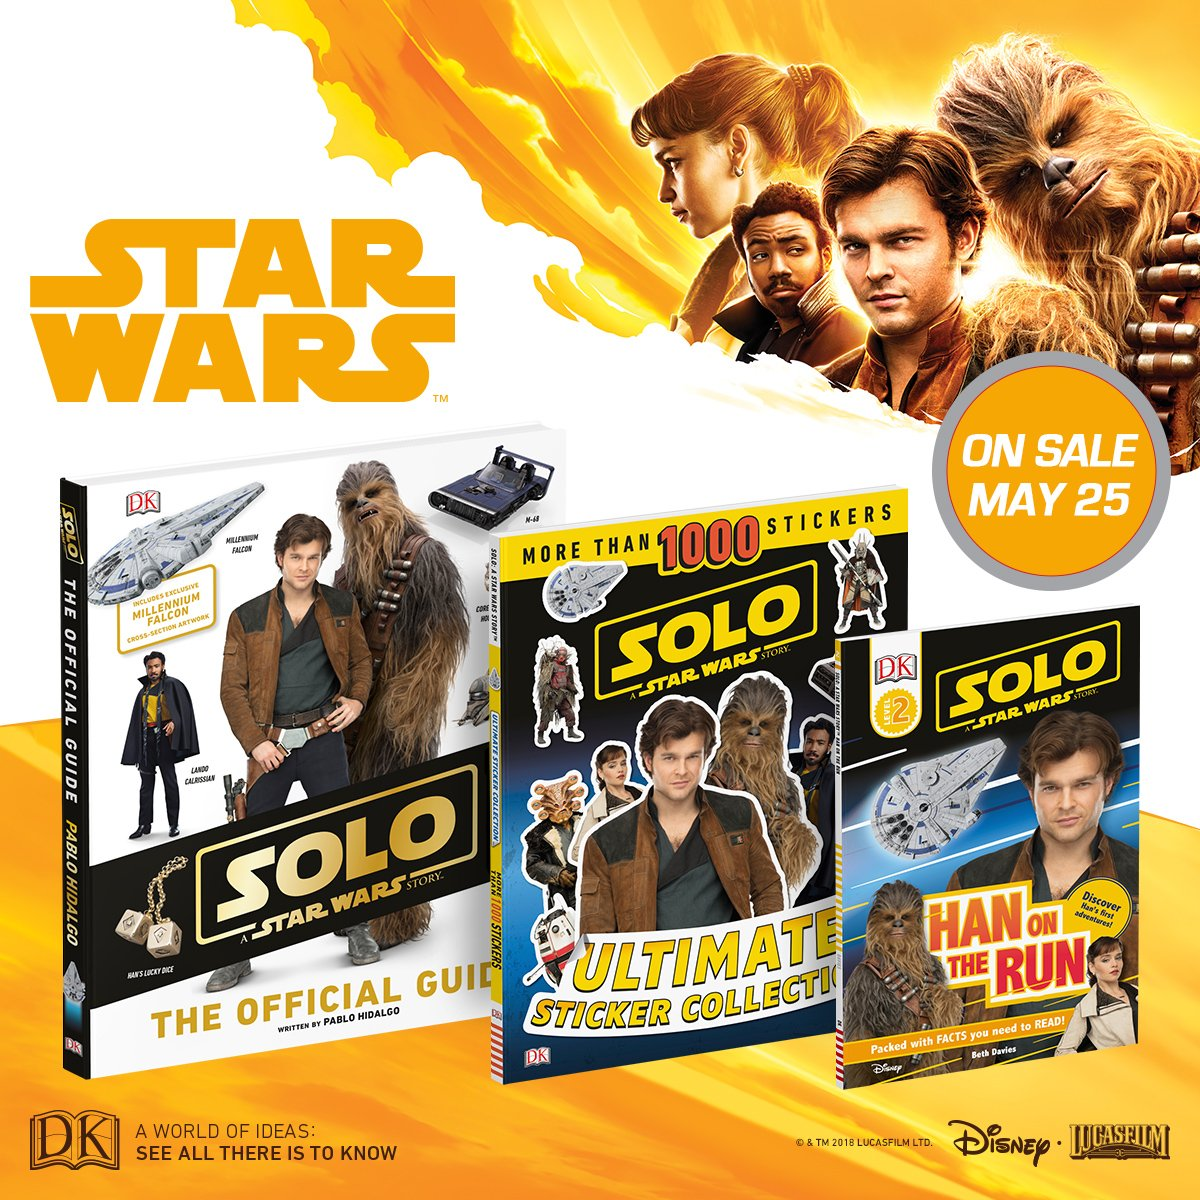 Did you catch the Solo: A @StarWars Story movie trailer yet? Our #Solo books go on sale May 25th, but are available for preorder now! bit.ly/2HJ9YBz